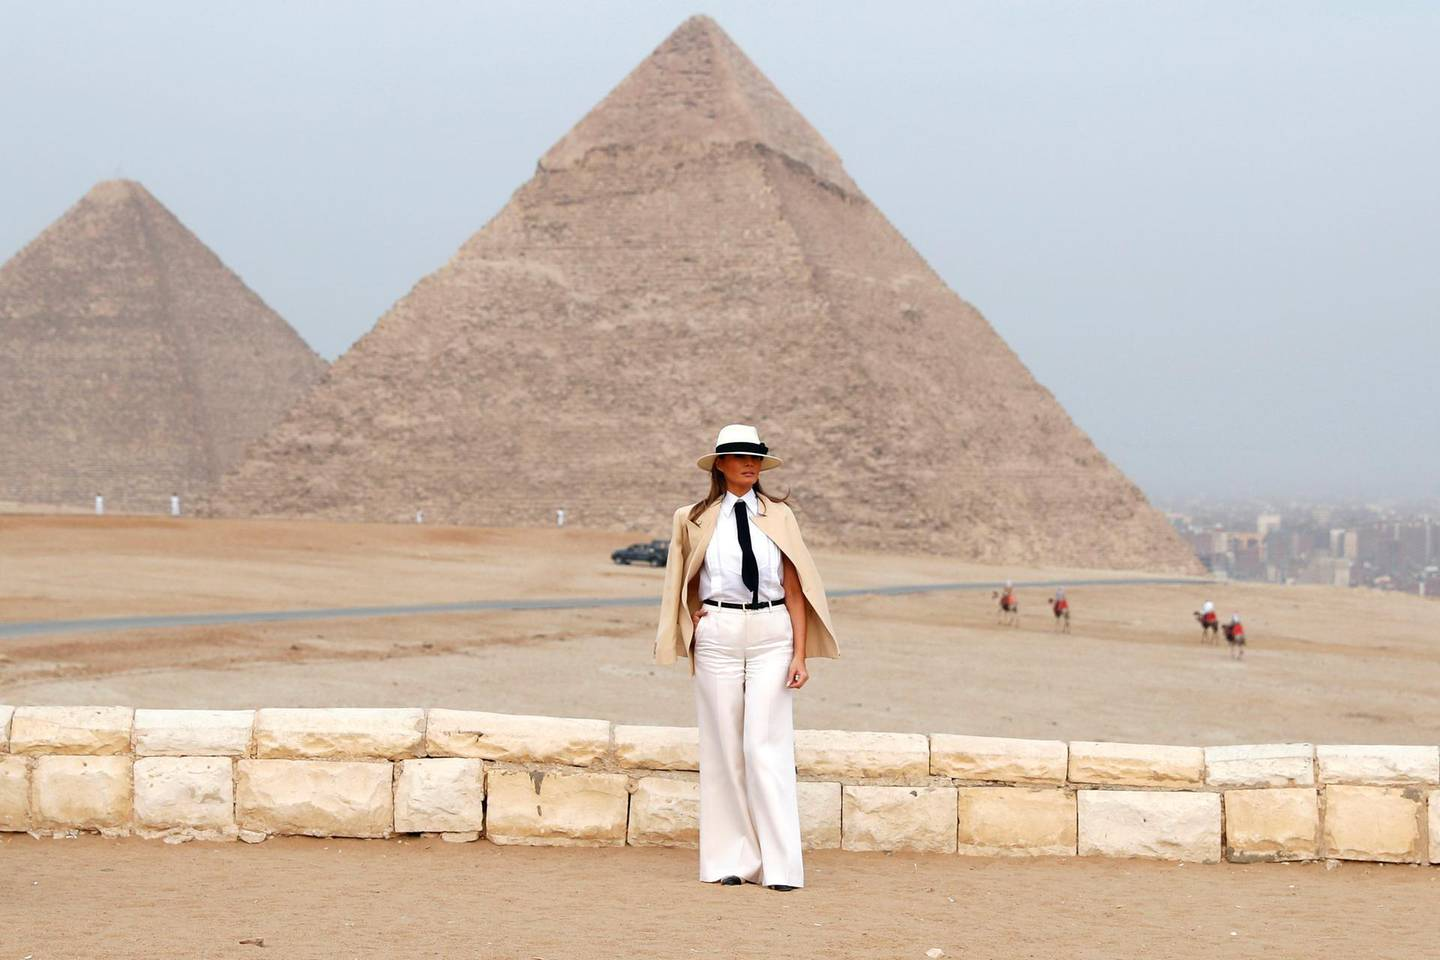 U.S. first lady Melania Trump tours the pyramids of Egypt in Cairo, Egypt, October 6, 2018. REUTERS/Carlo Allegri